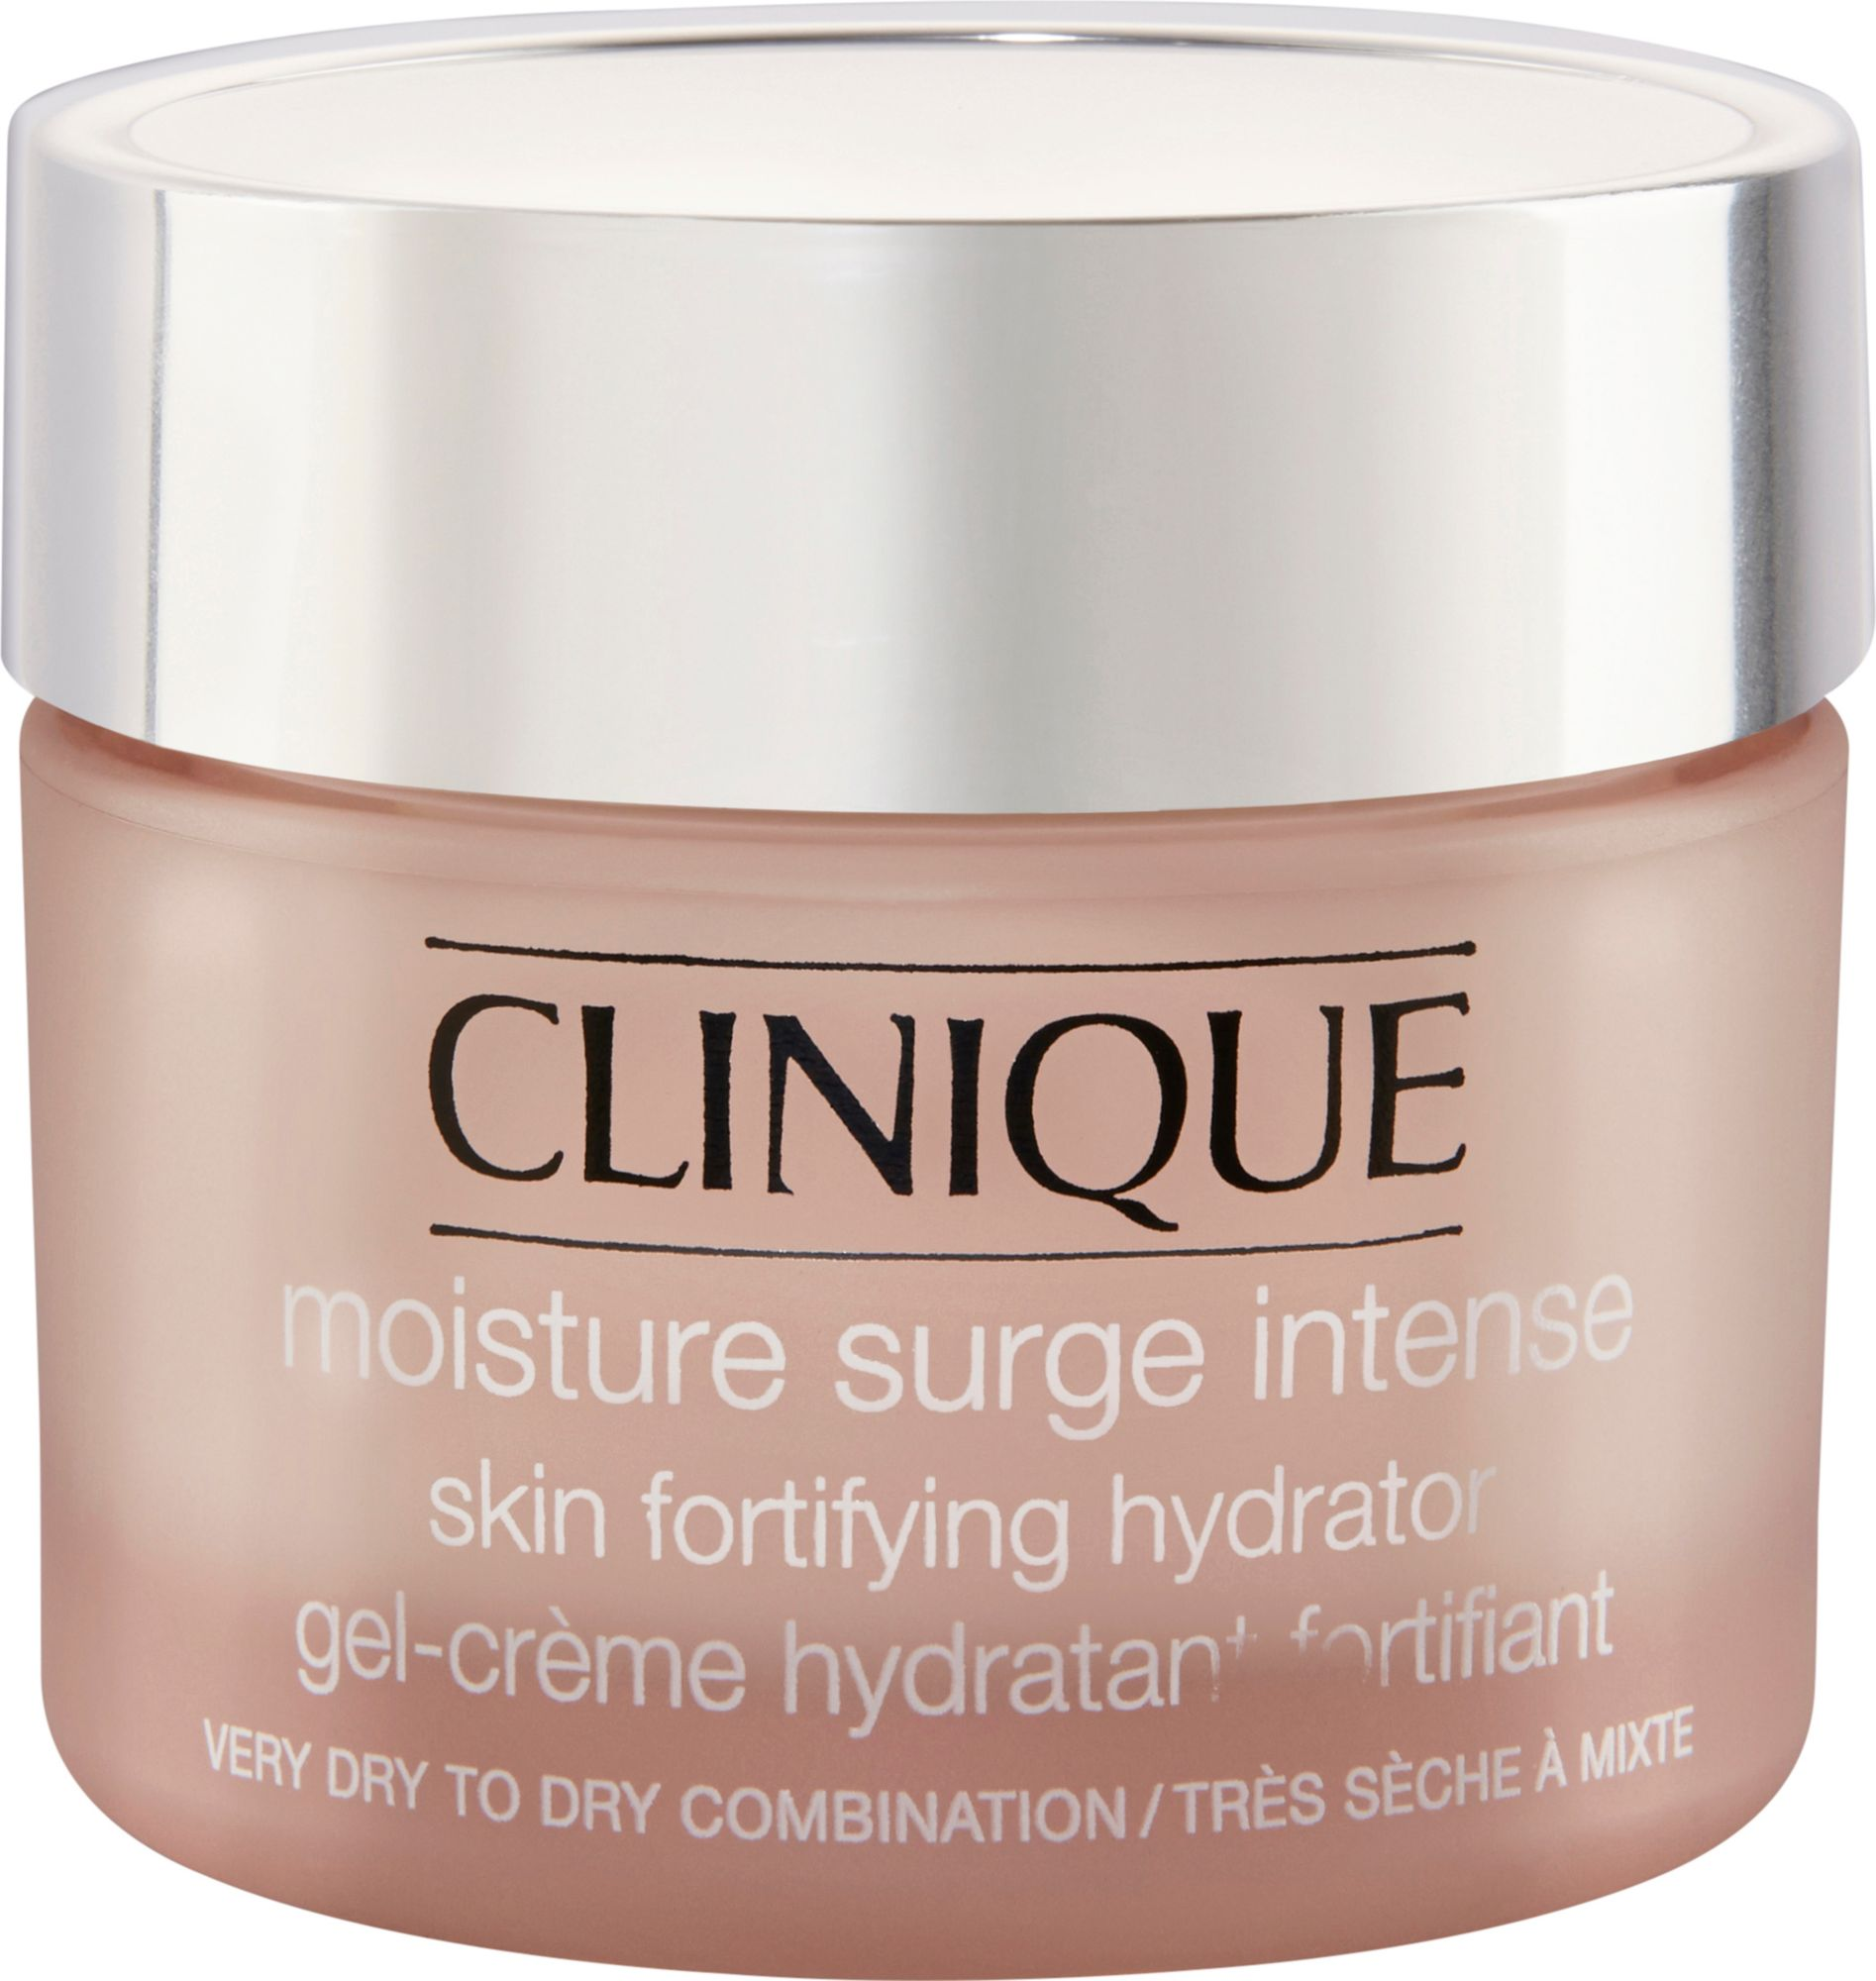 CLINIQUE Clinique, »Moisture Surge Intense Skin Fortifying Hydrator«, Feuchtigkeitspflege